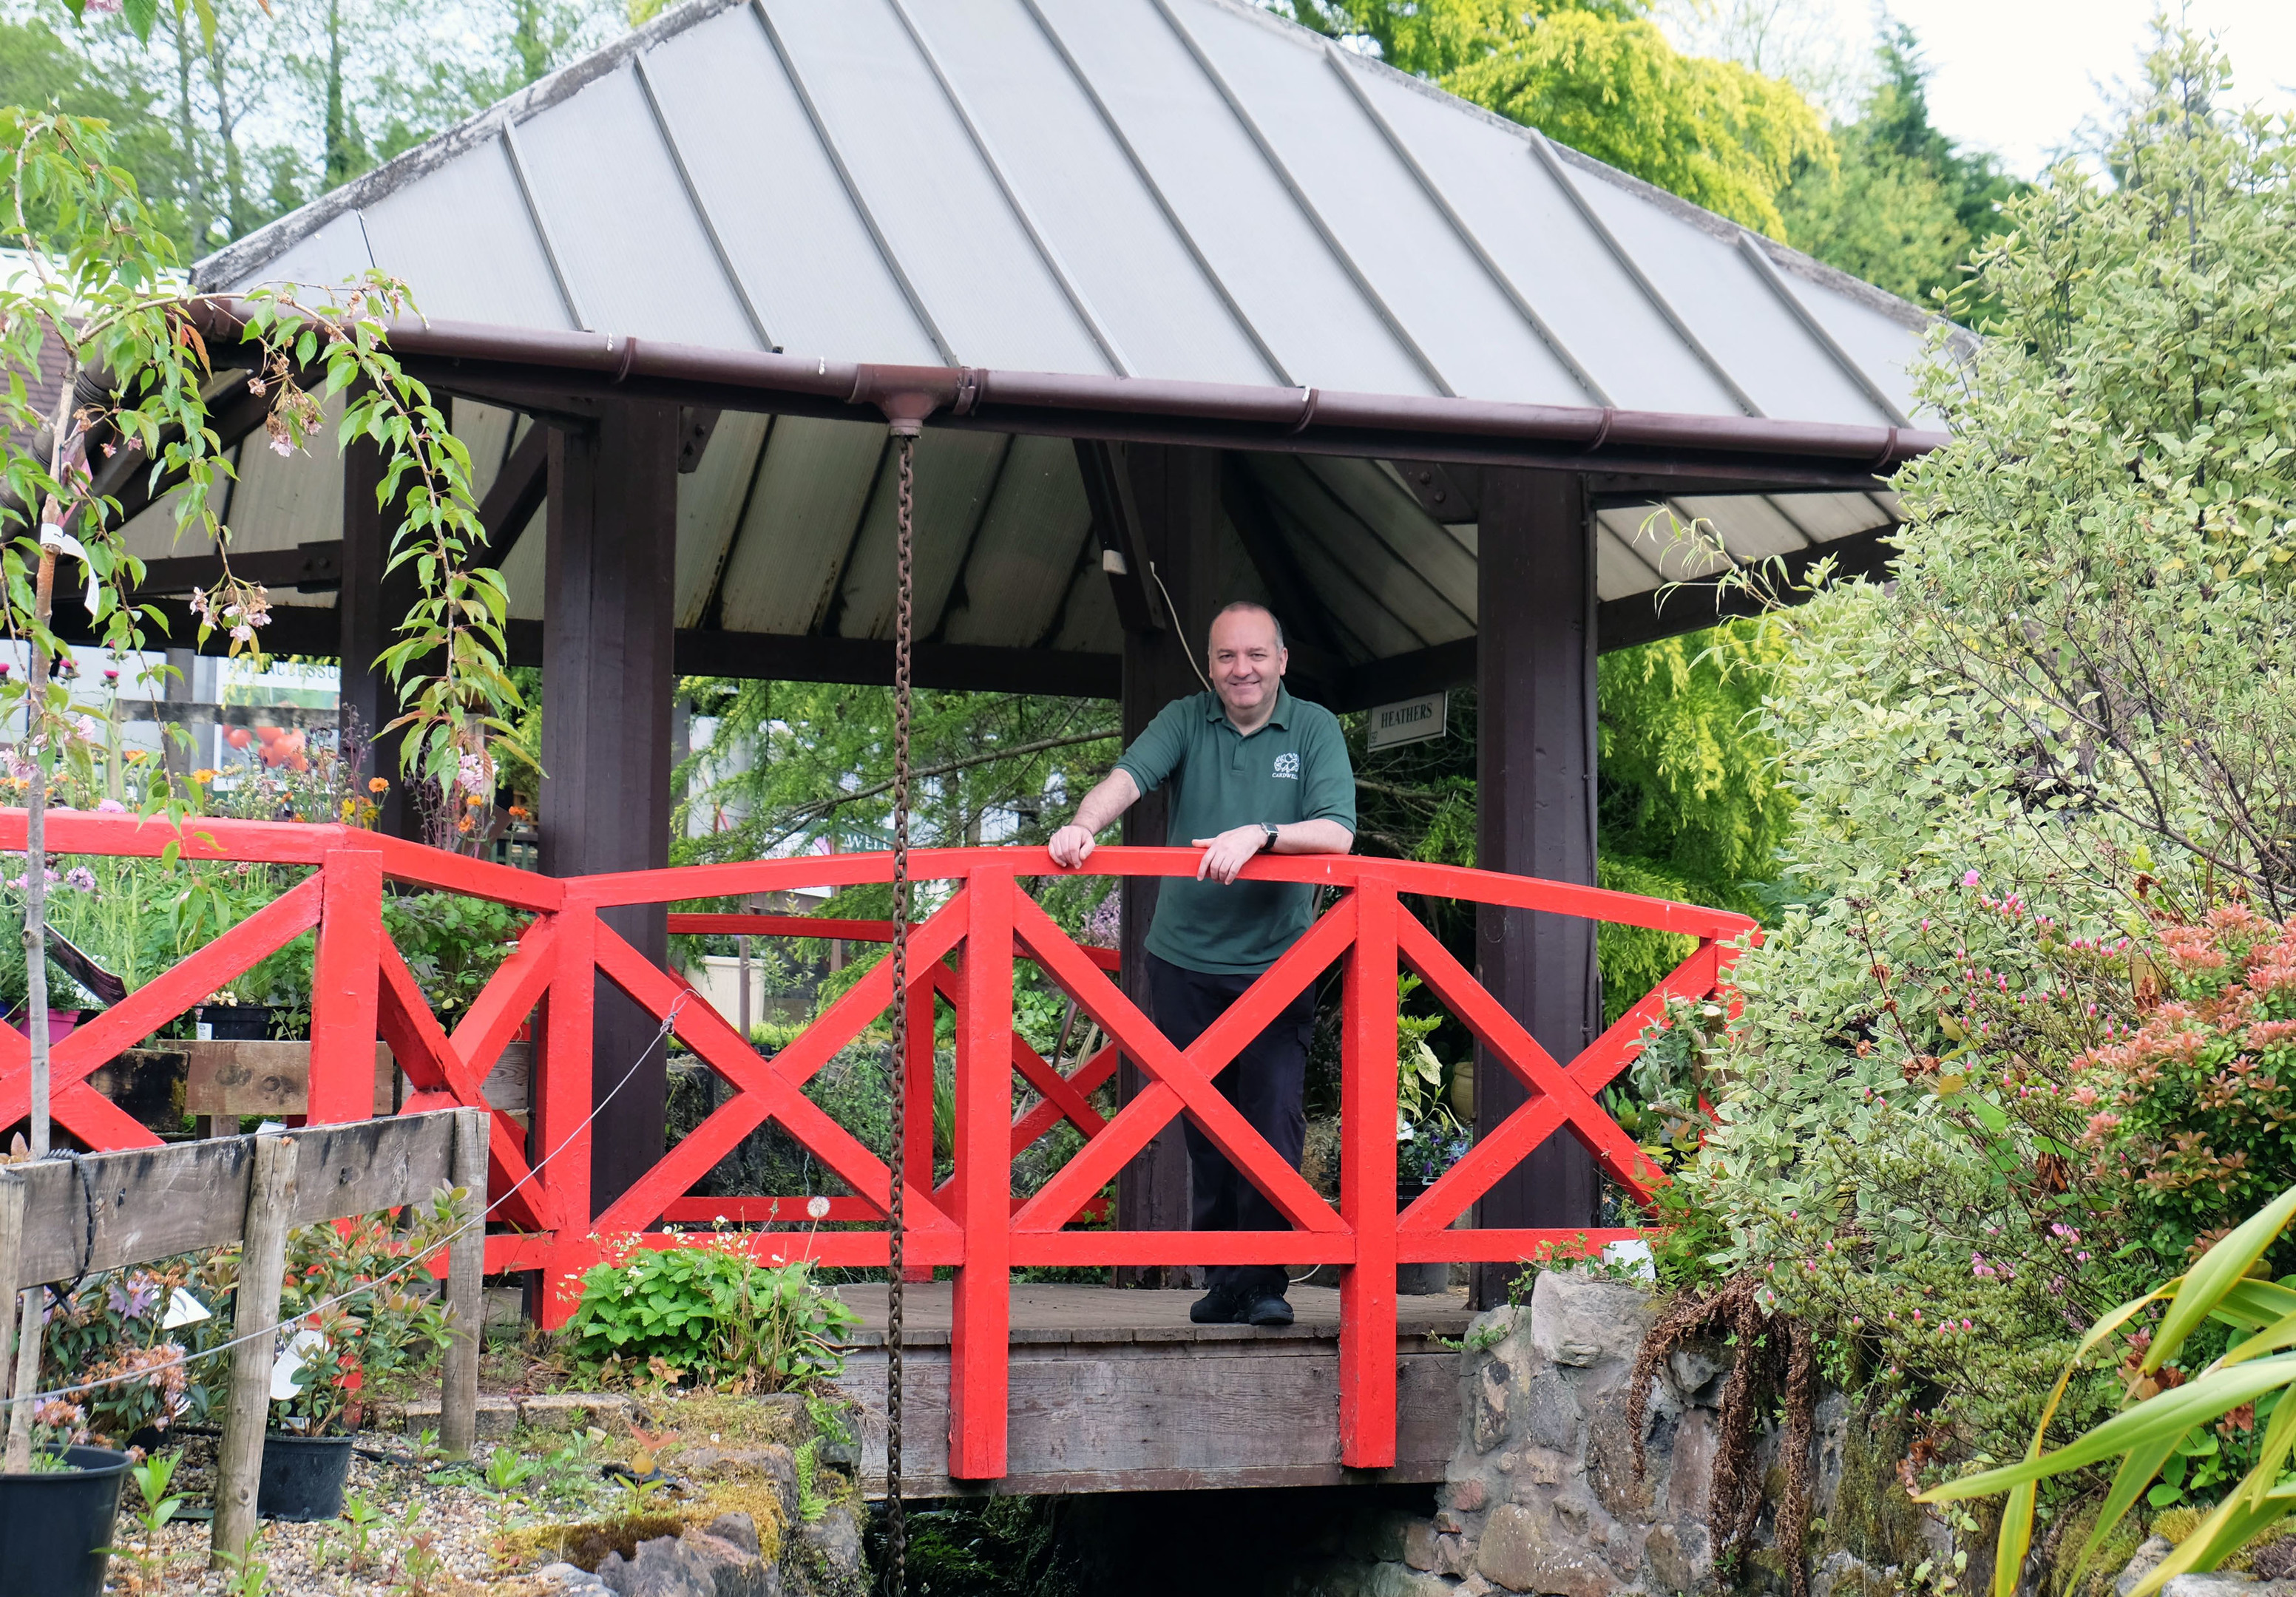 Cardwell's retail general manager, Paul Carmichael at the bridge and pagoda-style shelter that came from the Glasgow Garden Festival and is now at Cardwell Garden Centre